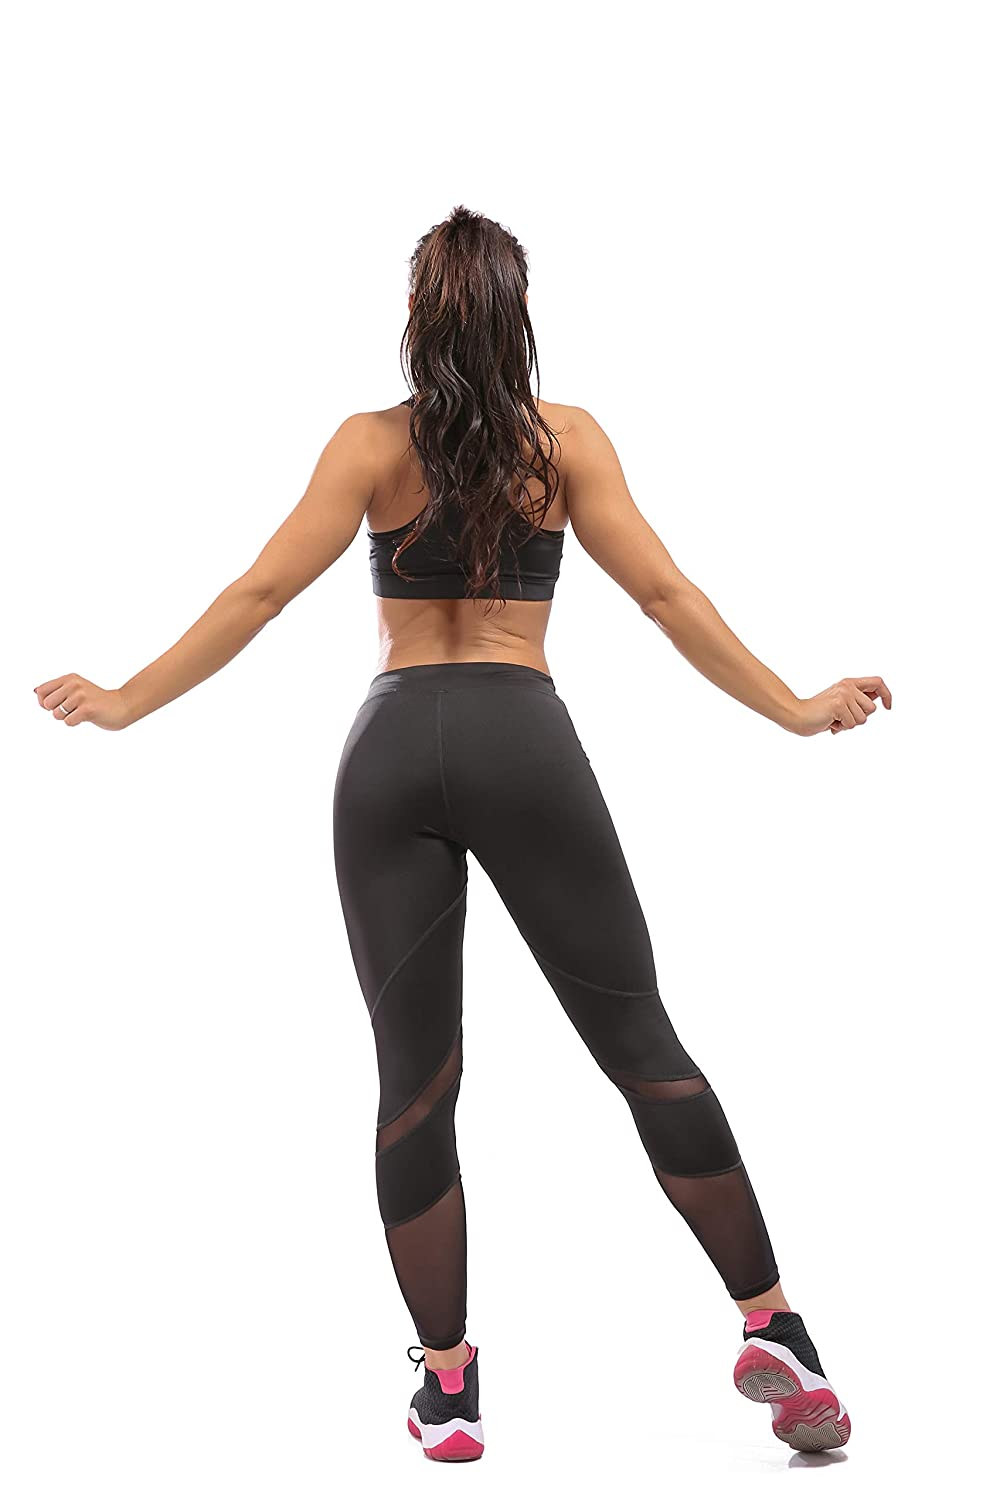 33c82d566e Amazon.com: OwnShoe Yoga Pants Ankle-Length Tummy Control Workout Dance  Running Sexy Leggings for Women: Clothing